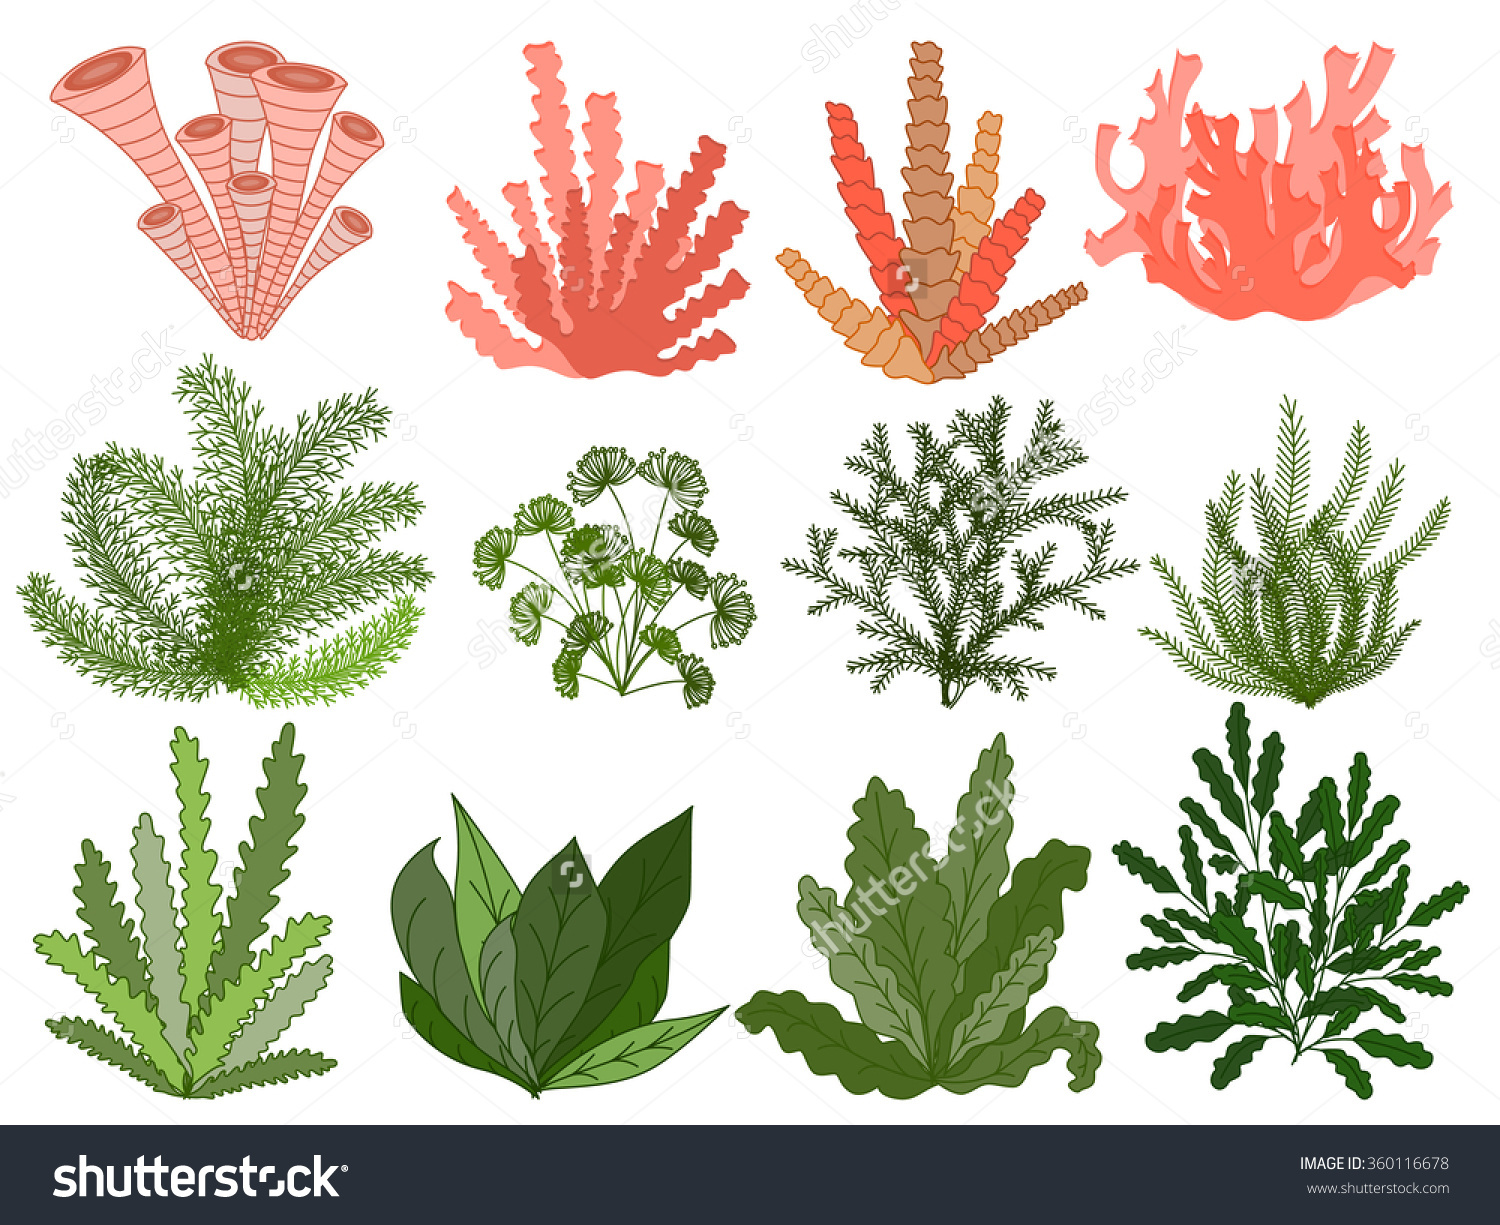 Marine Plant clipart #12, Download drawings